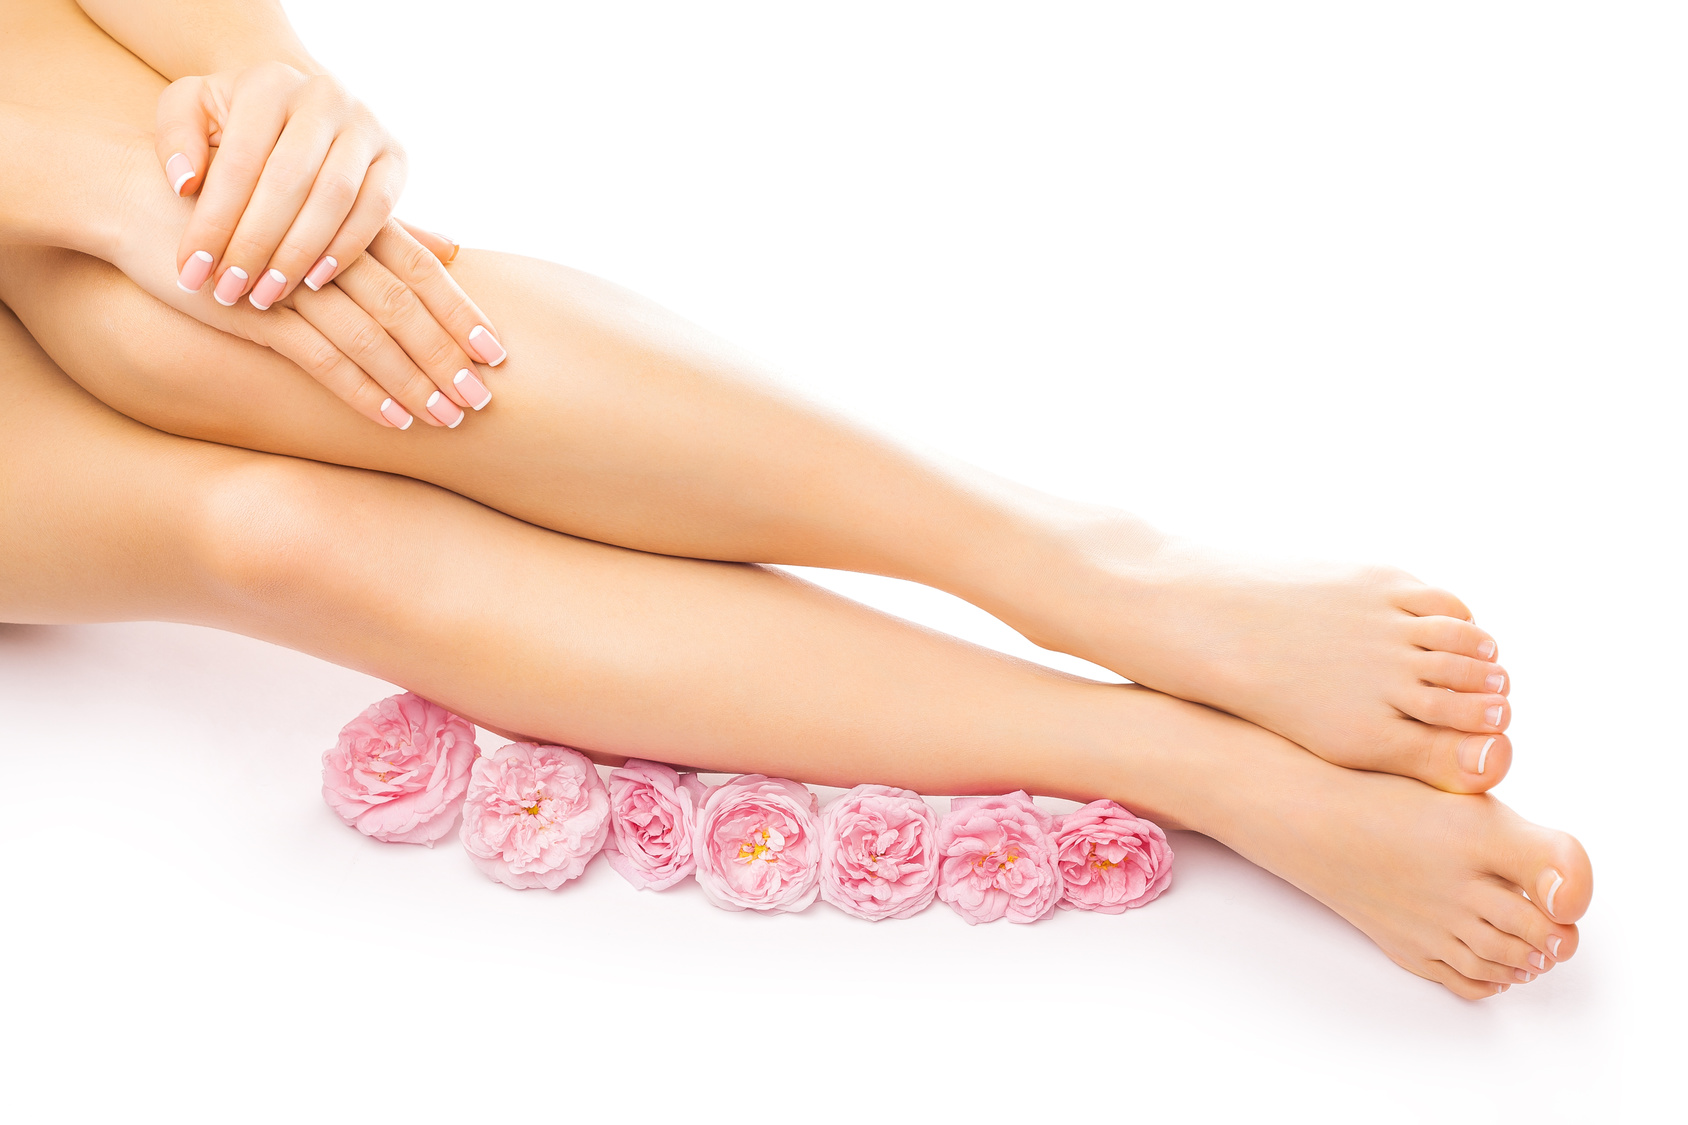 french pedicure and manicure with a pink rose flower isolated on the white